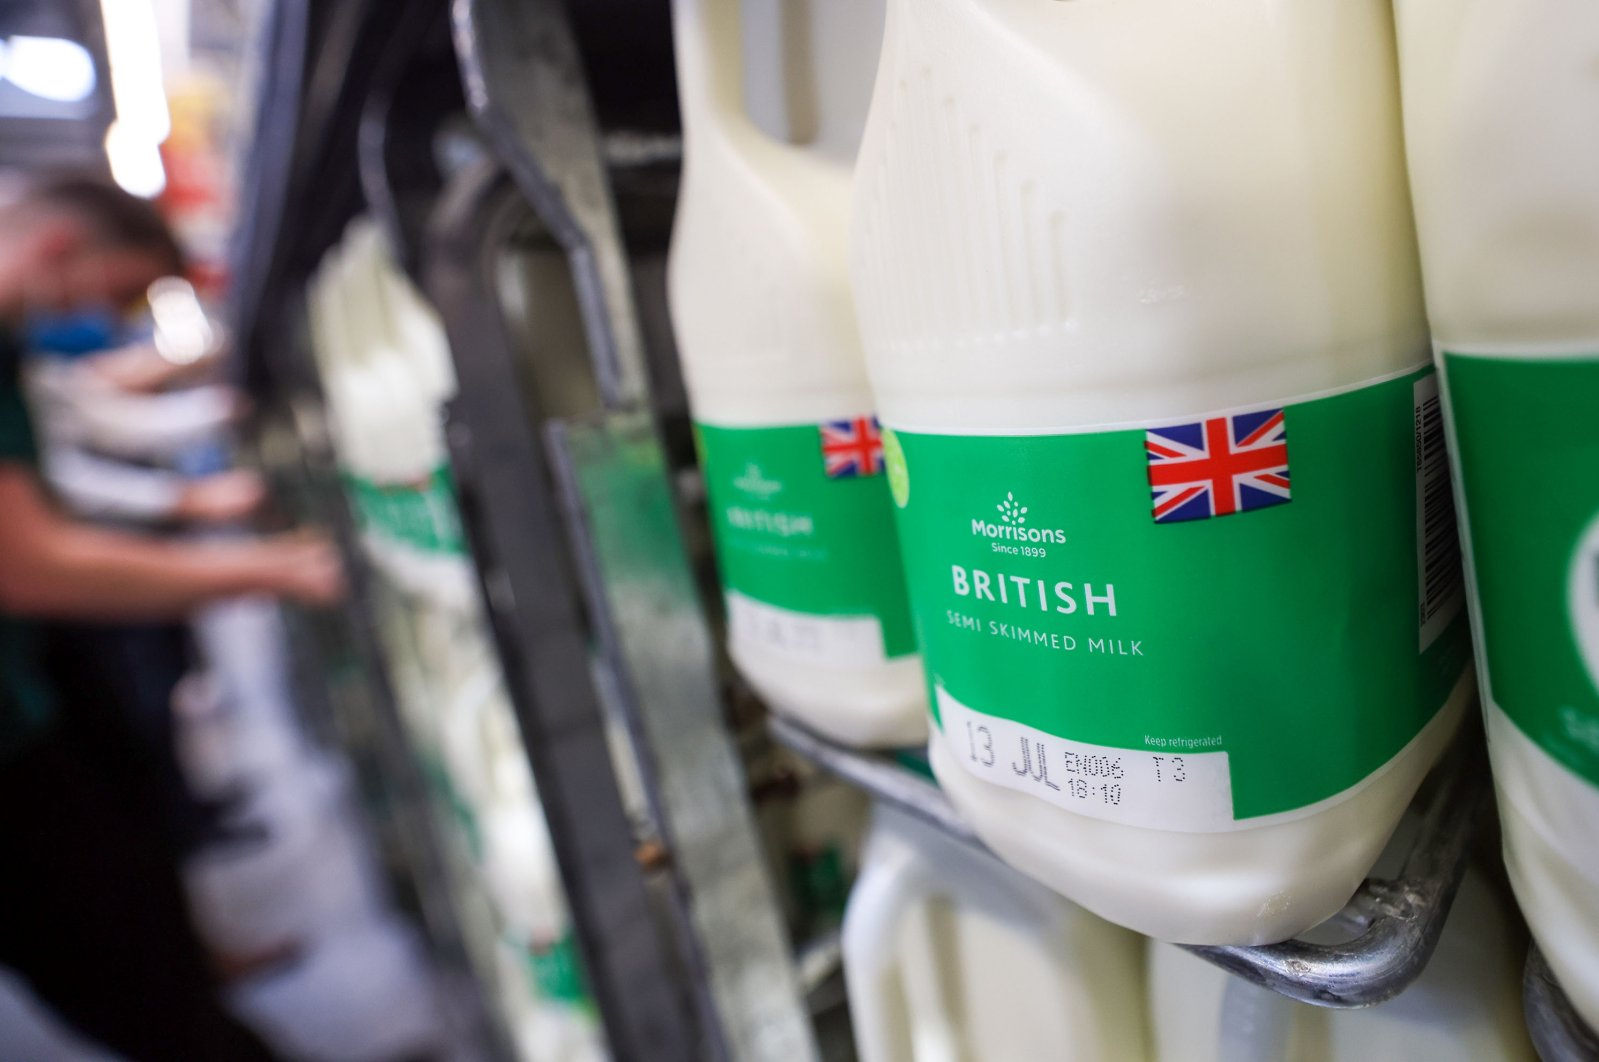 Semi-skimmed milk in a Morrisons supermarket, operated by Wm Morrison Supermarkets Plc, in Saint Ives, U.K., July 5, 2021. (Getty Images)